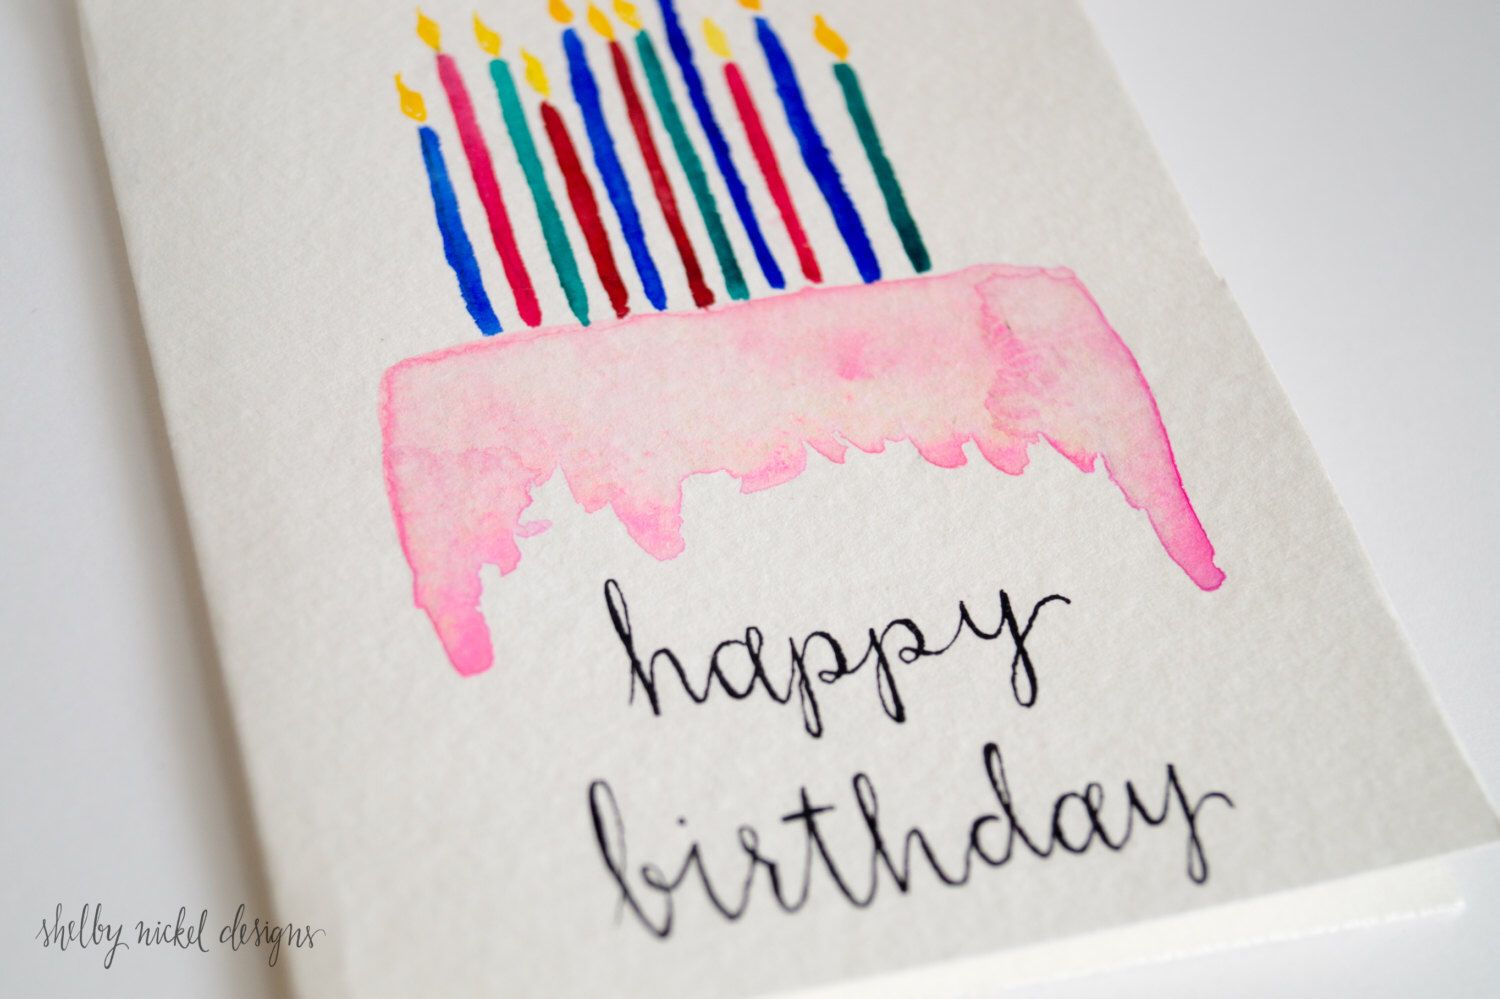 Pin By Sharon Thorson On Cards Pinterest Watercolor Cards